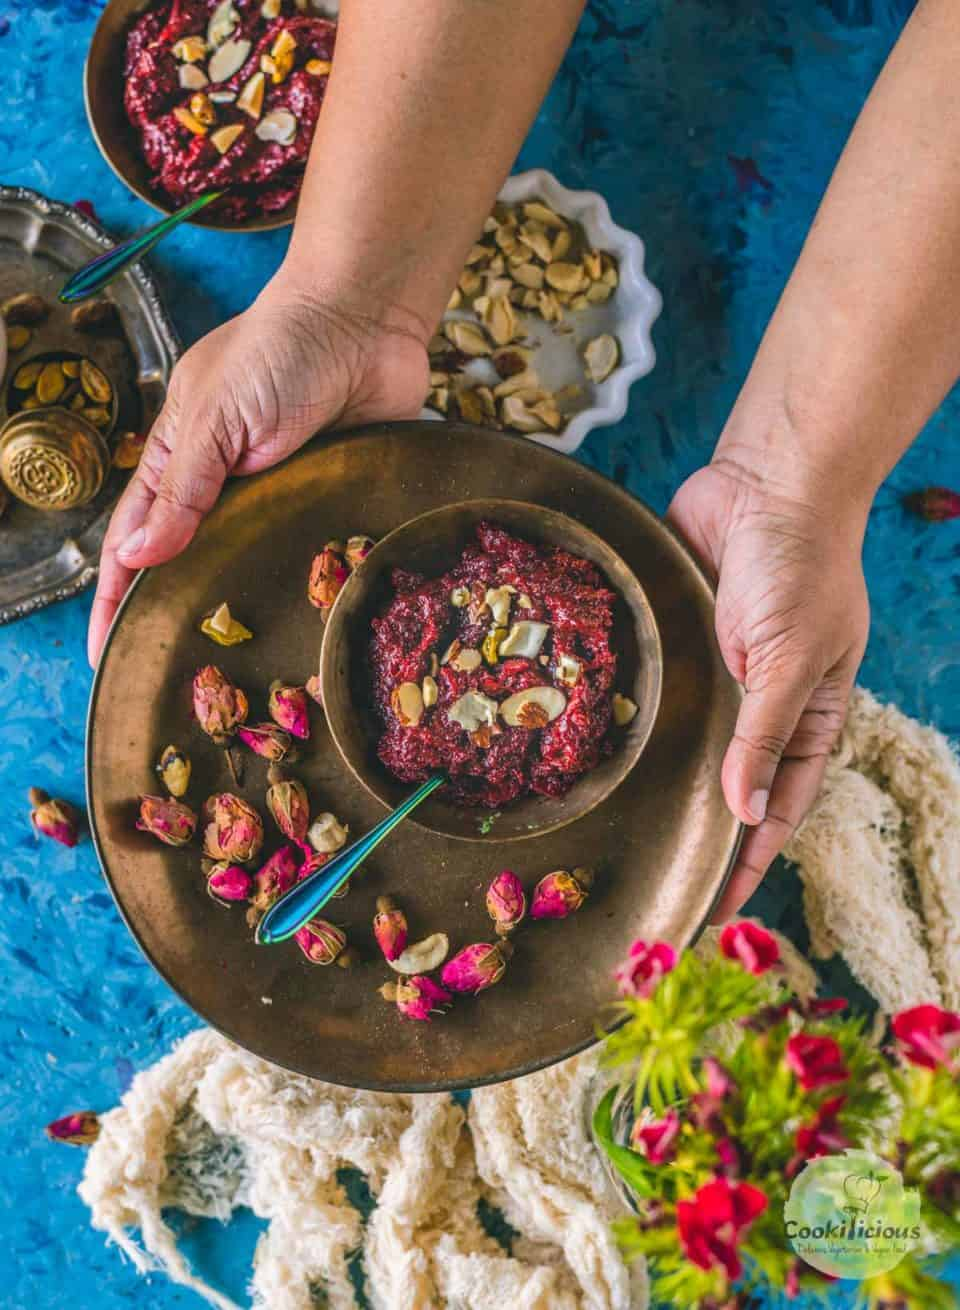 a set of hands serving a bowl of Beetroot Halwa